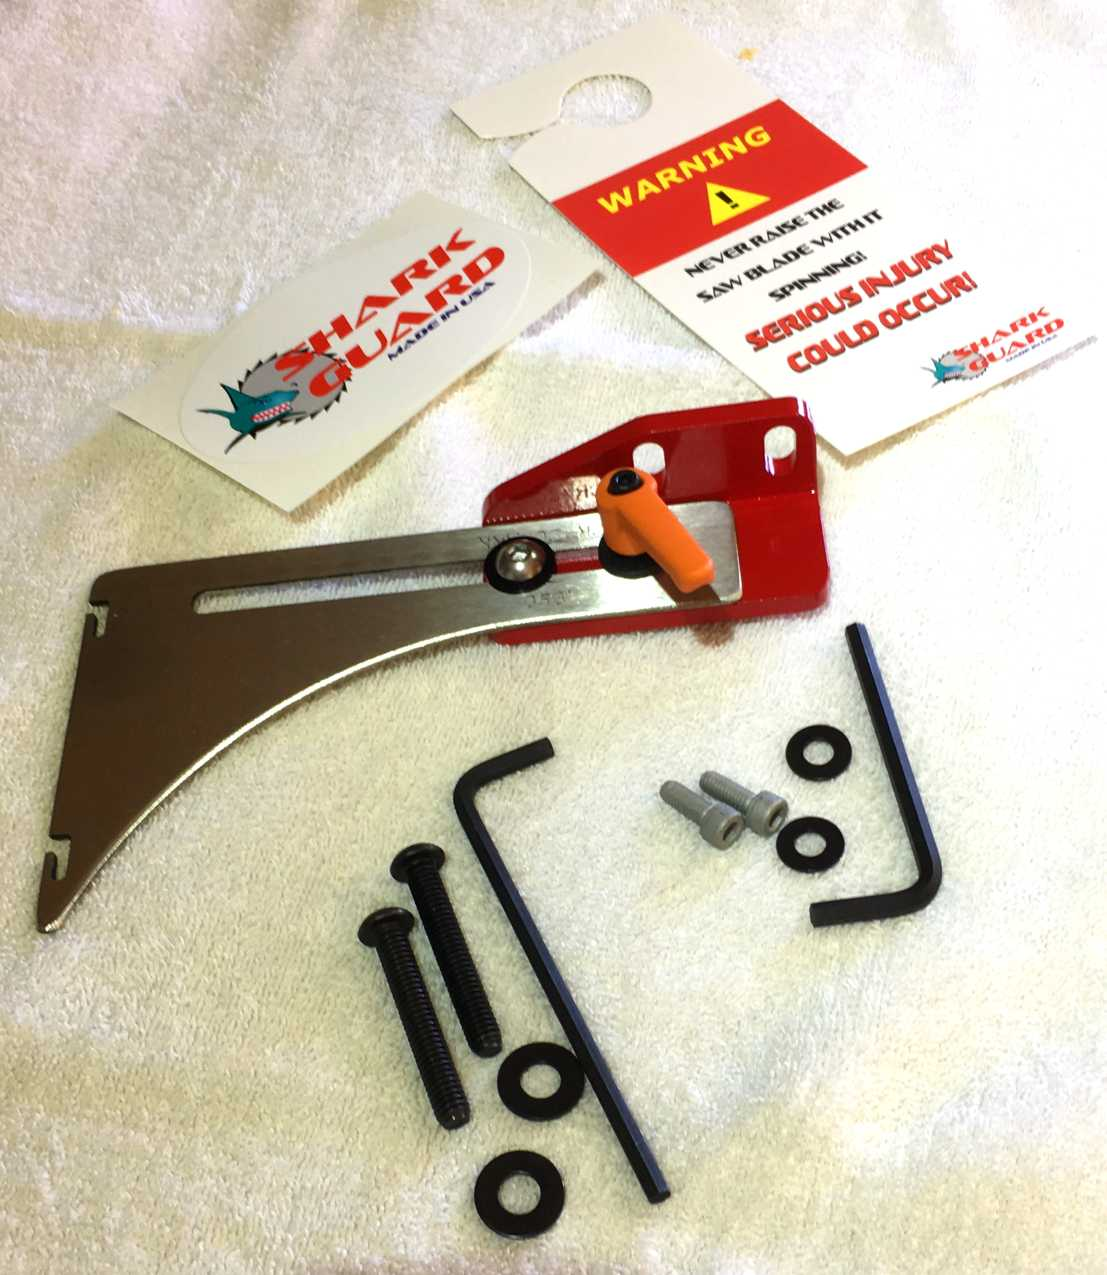 order shark guard table saw blade guards